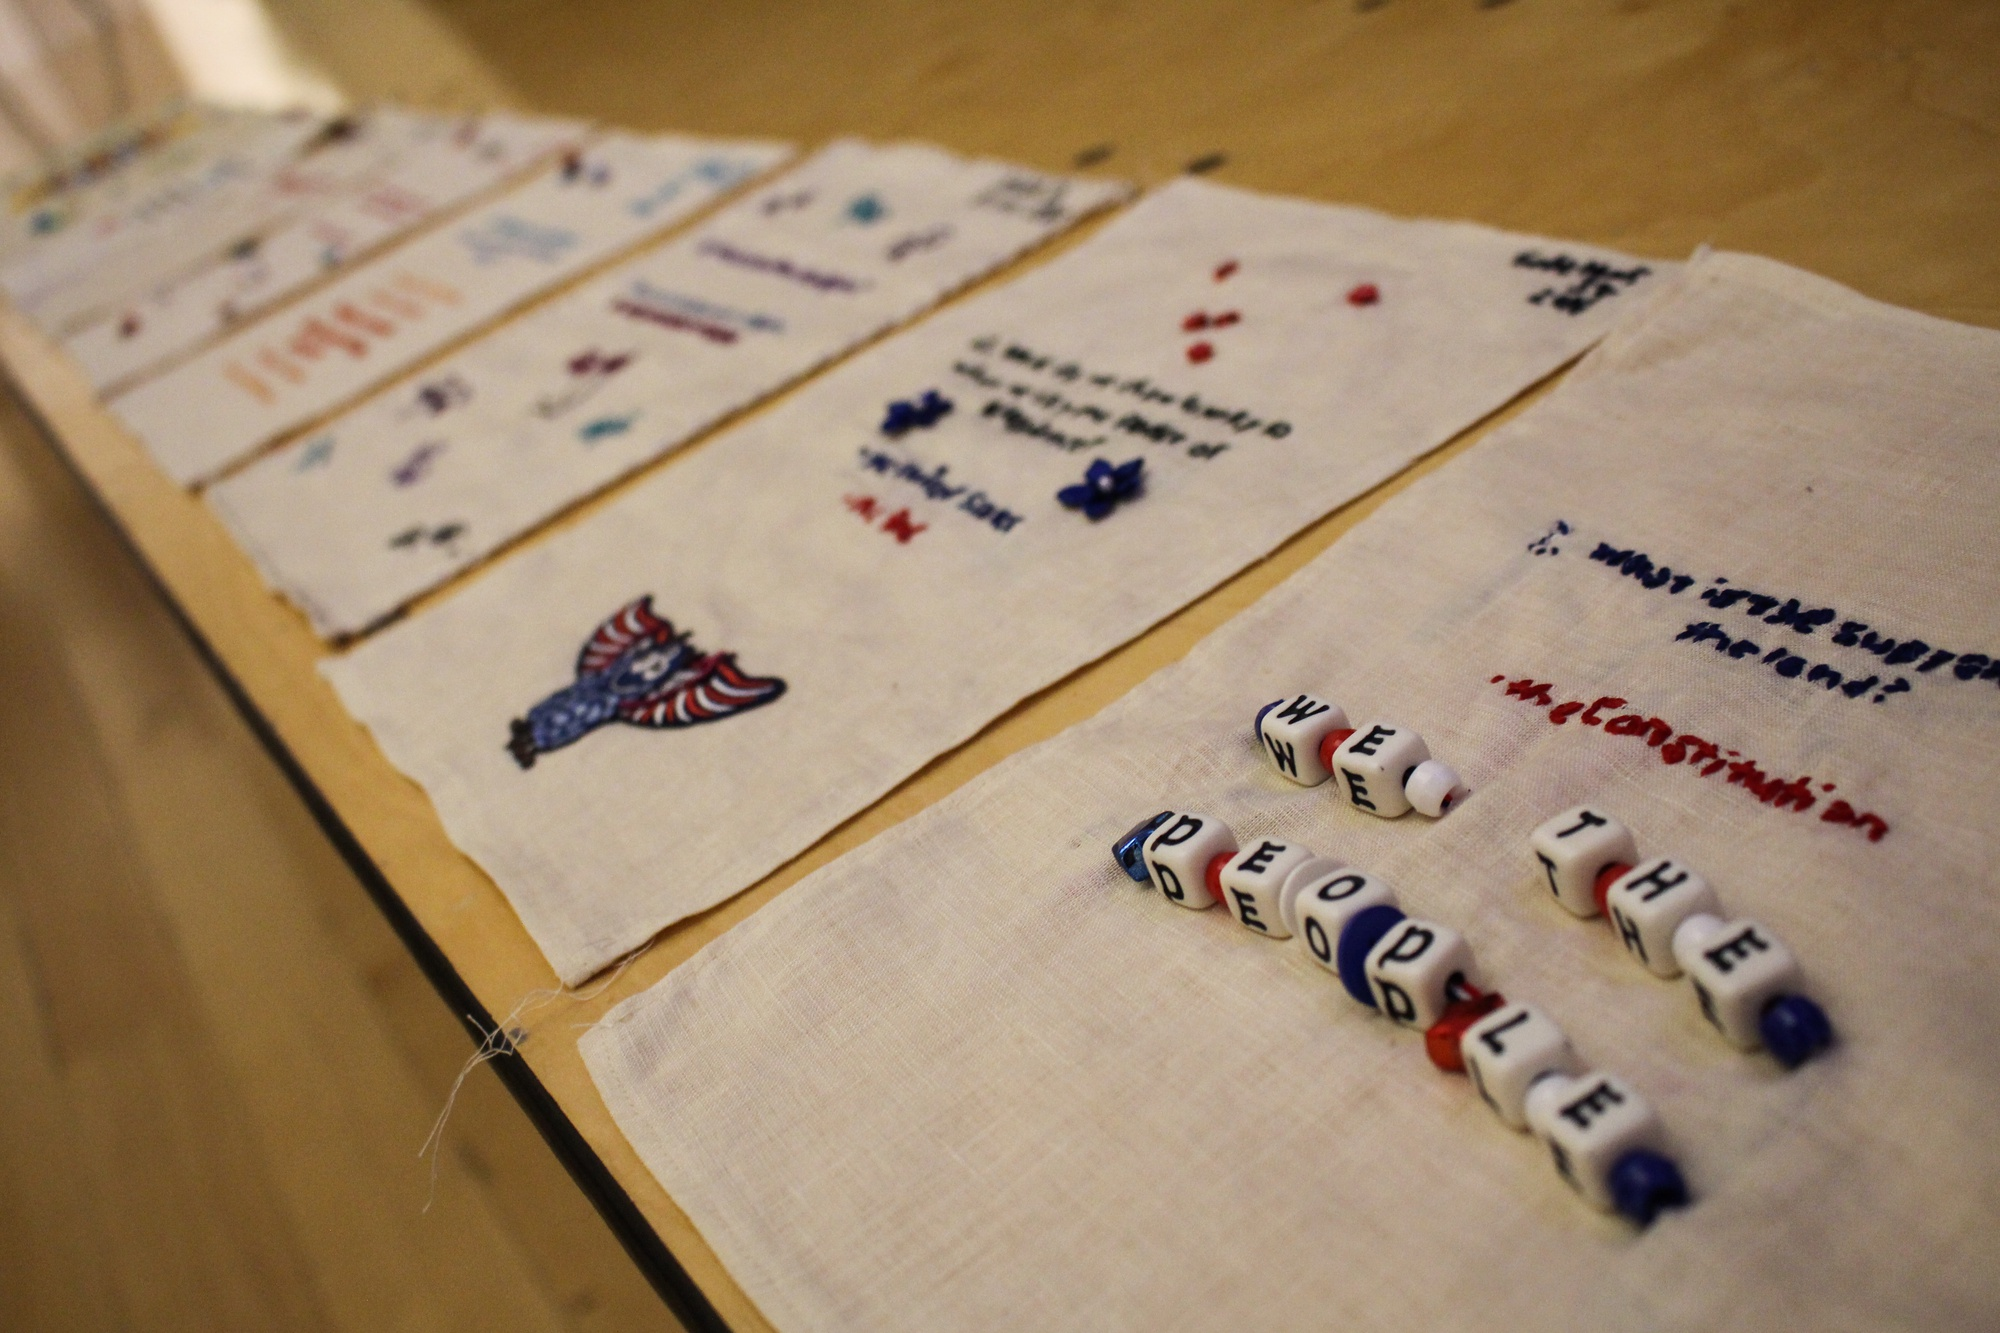 Workshop participants embroider samplers as they study for the naturalization test.